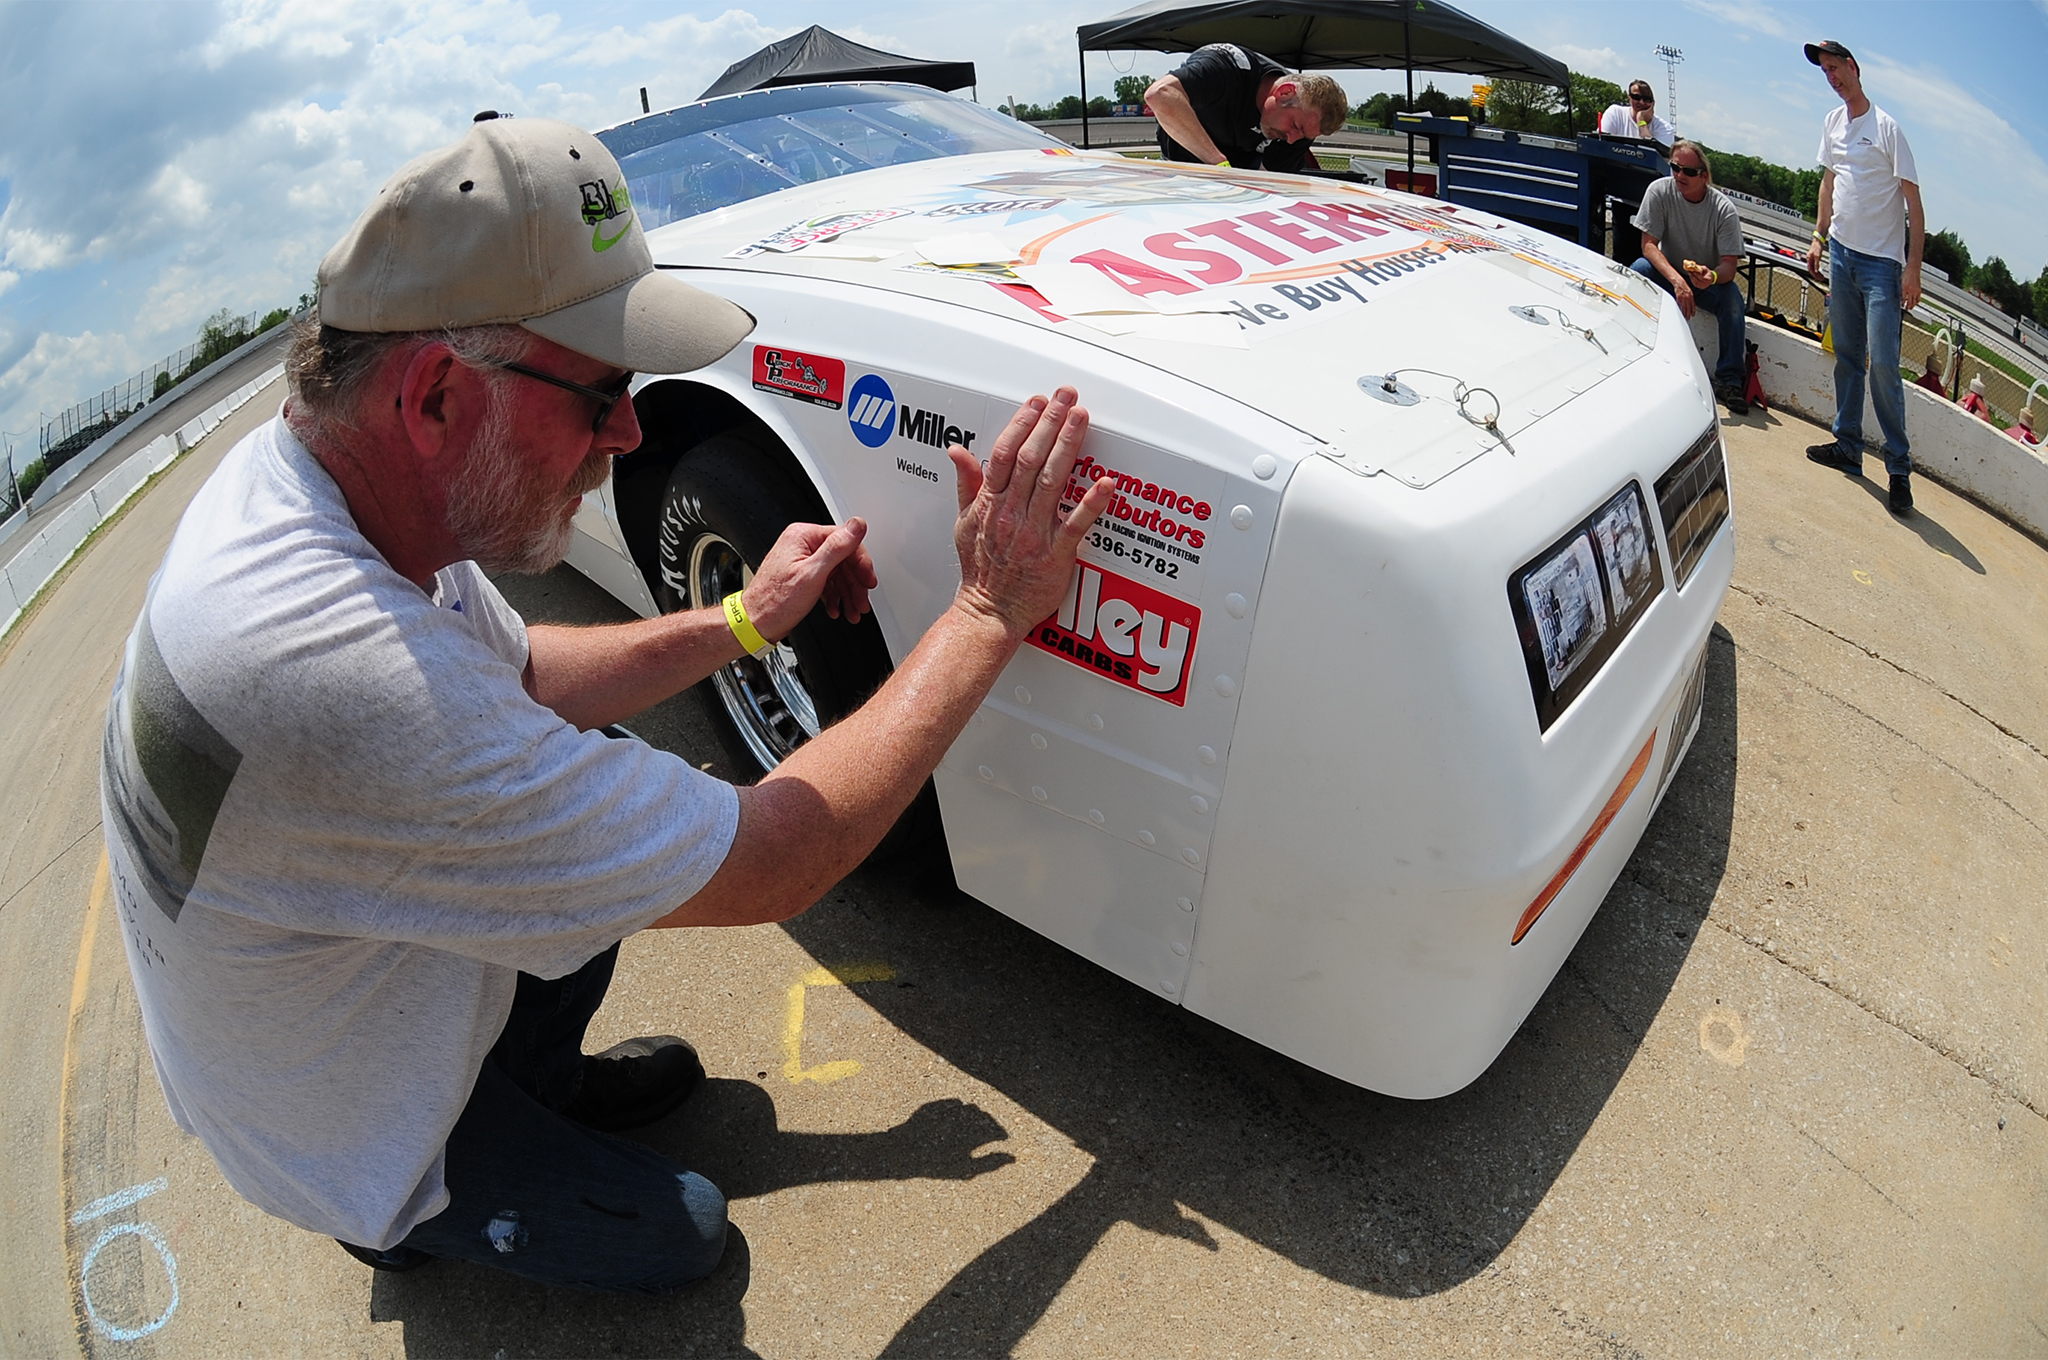 Official product sponsor decals are affixed to the front of each competing car.